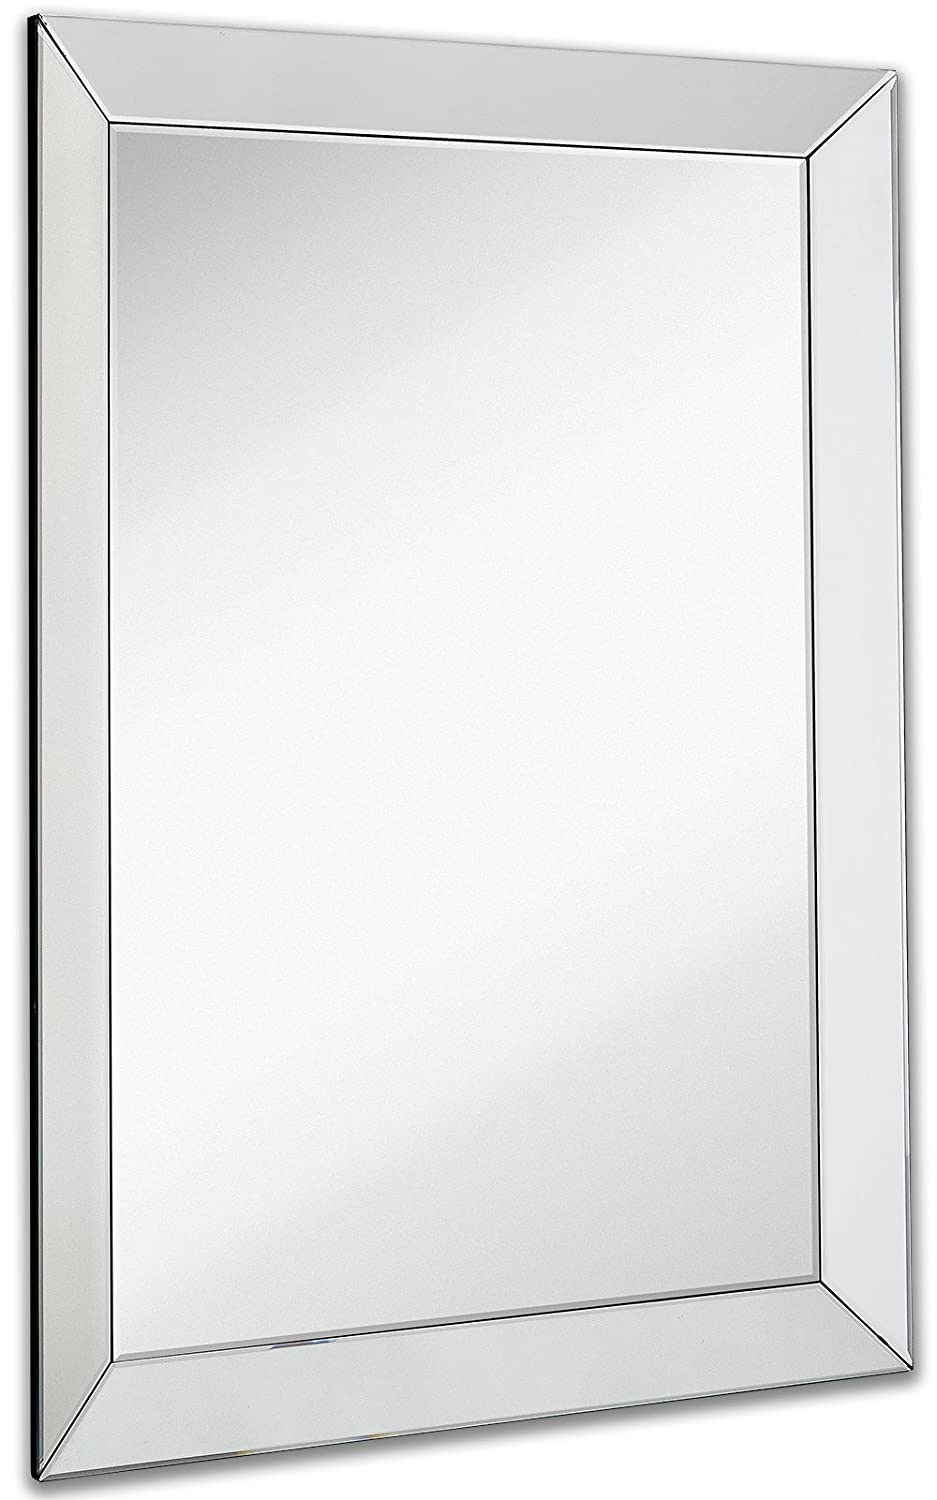 Completely new Amazon.com: Large Framed Wall Mirror with 3 Inch Angled Beveled  FV58